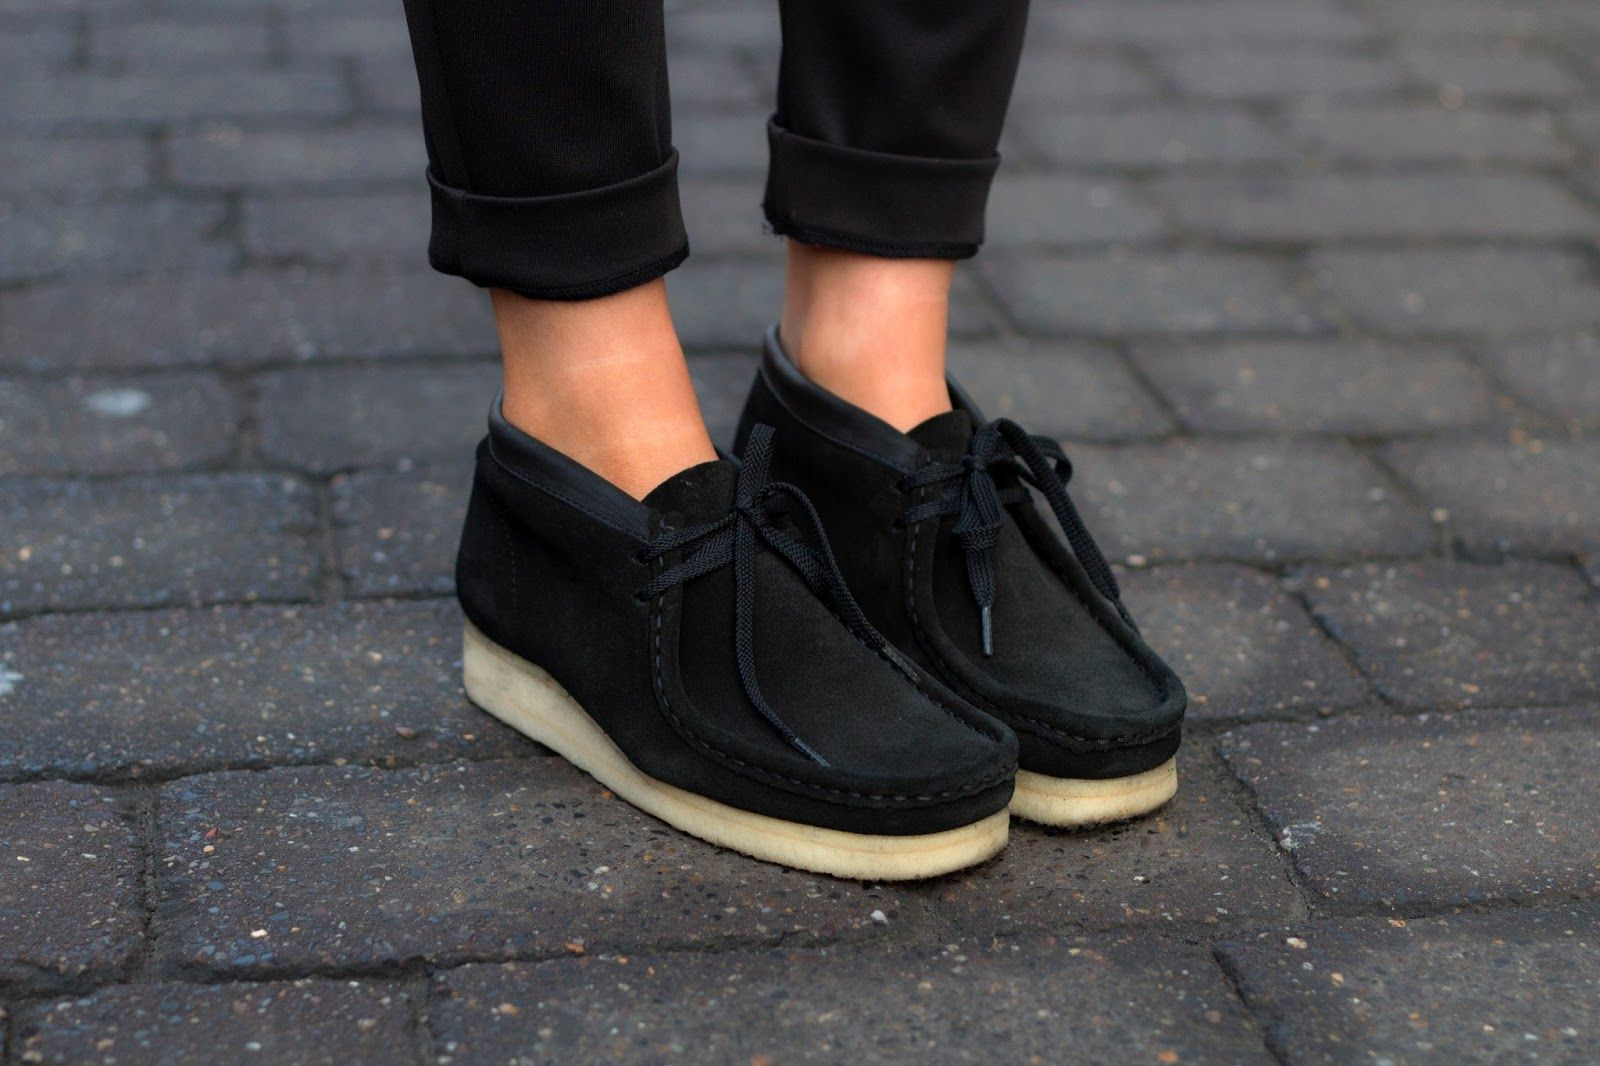 Asimilación Inspirar Deambular  omg these look so cool again! Need a black pair !!!!!! | Clarks shoes women,  Clarks wallabees outfit, Clarks wallabees